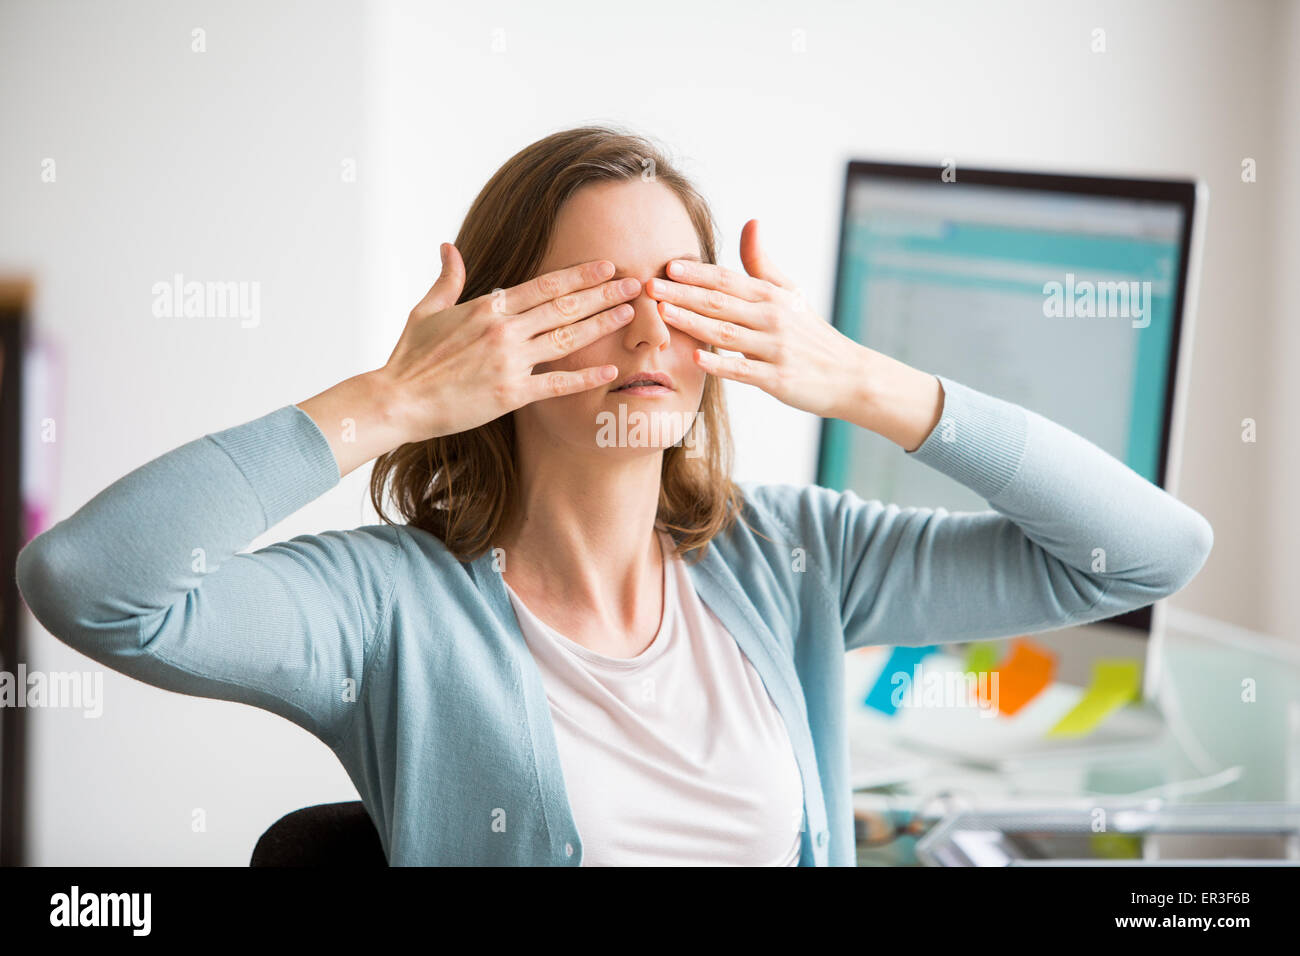 Facial exercise at work. - Stock Image